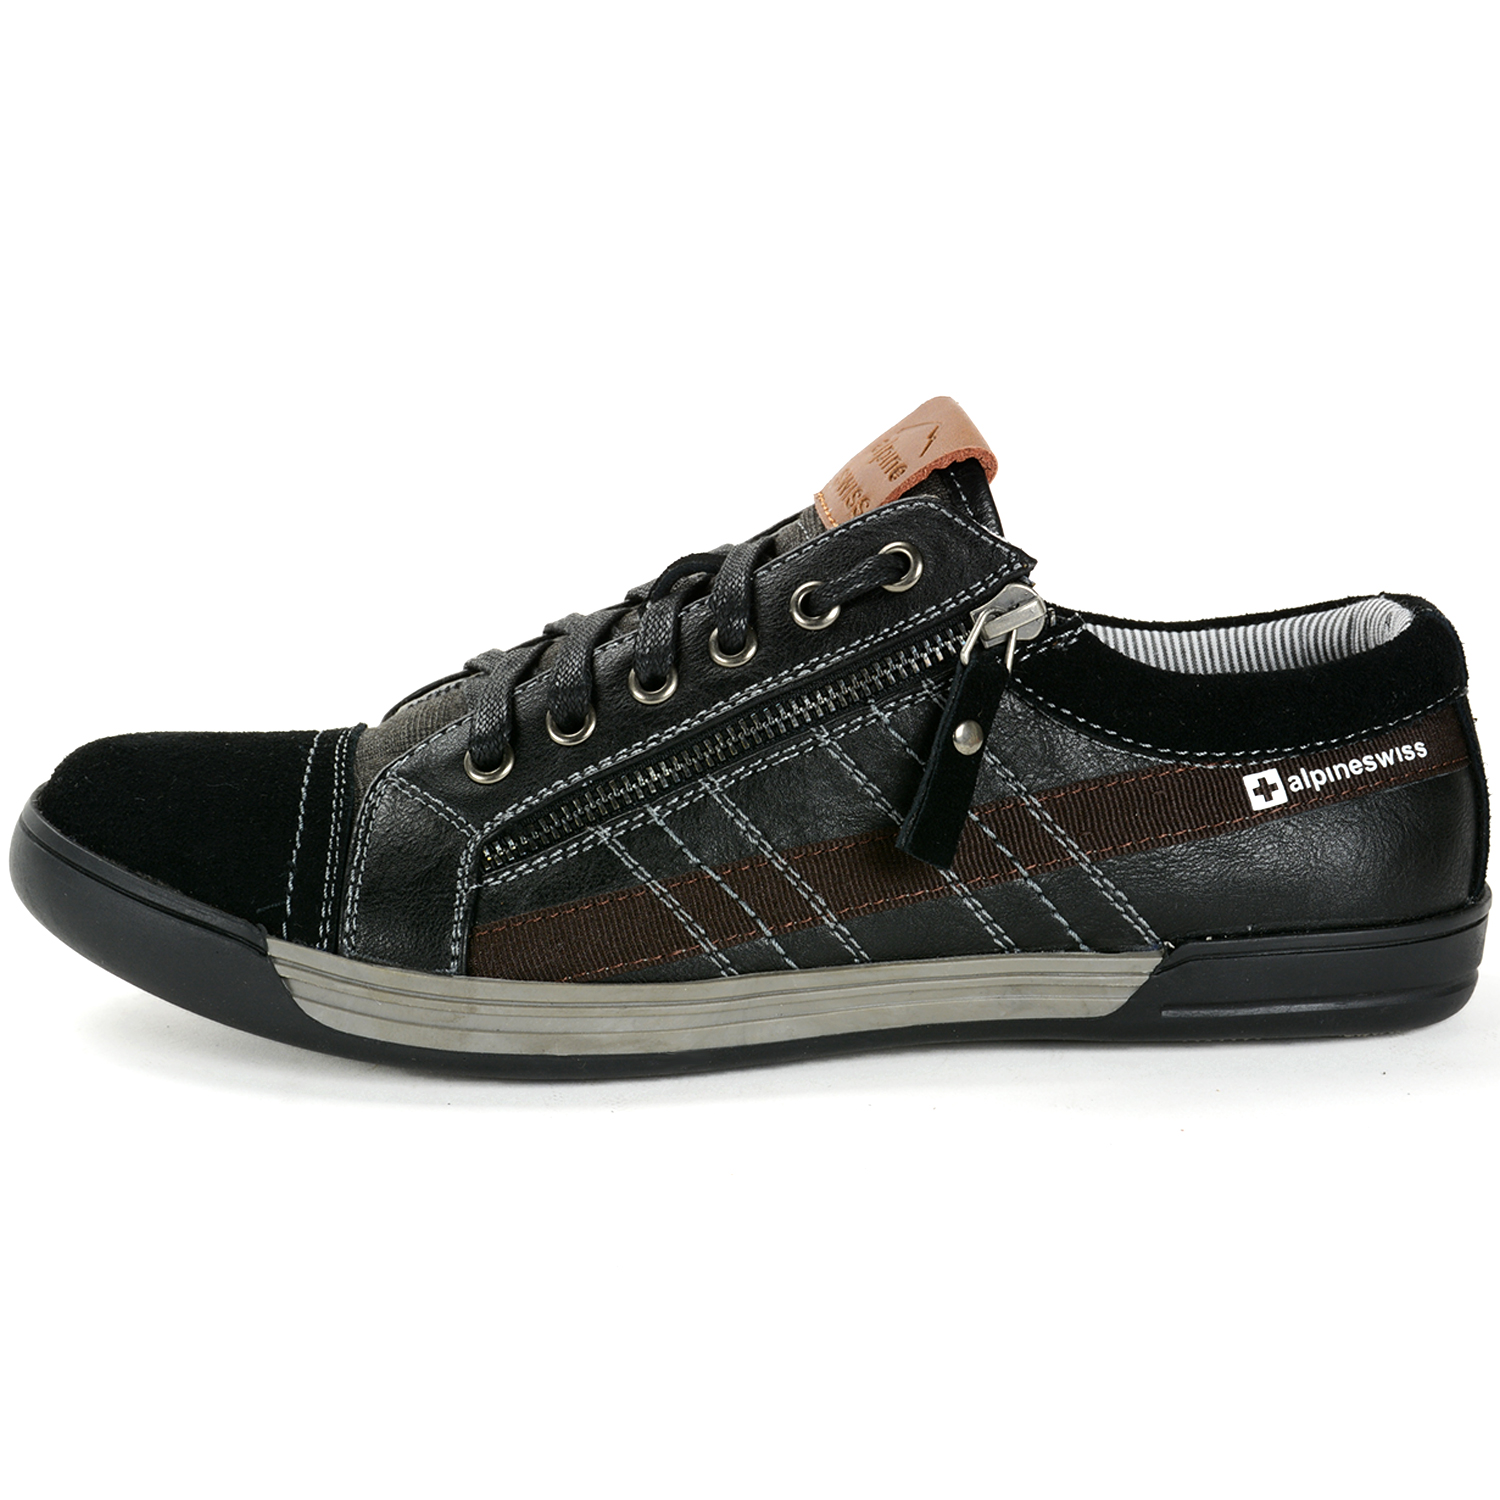 Alpine Swiss Valon Mens Fashion Sneakers Low Top Dress or ...